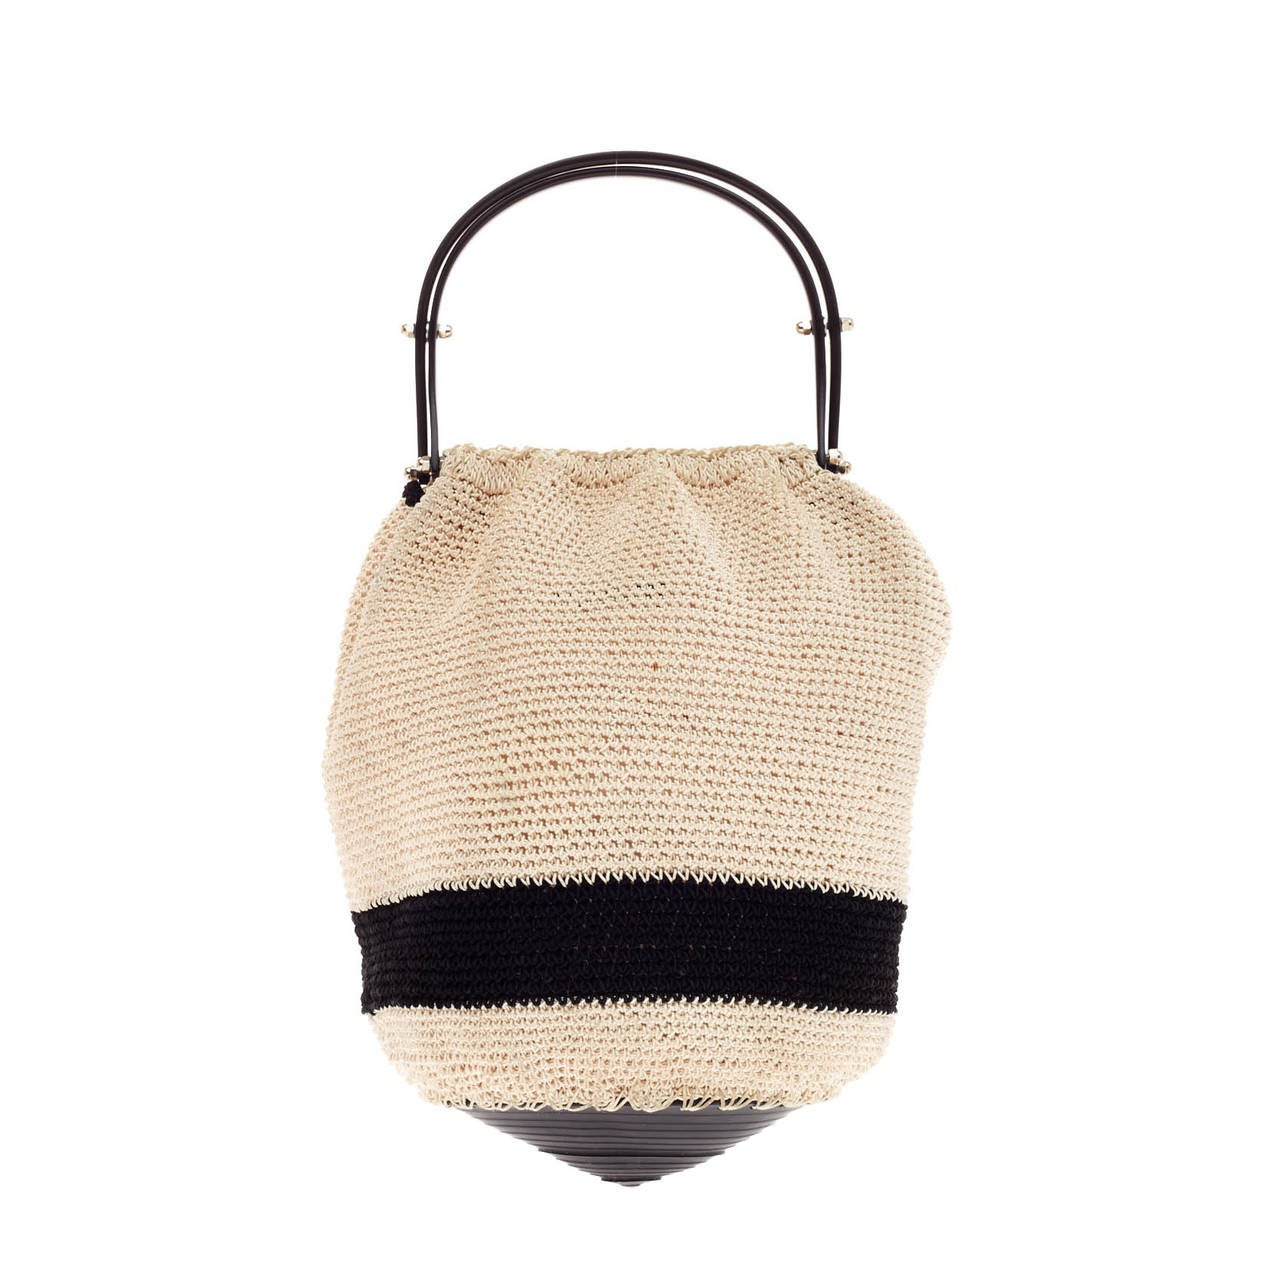 Crochet Bucket Bag : Chanel Top Handle Bucket Bag Crochet For Sale at 1stdibs